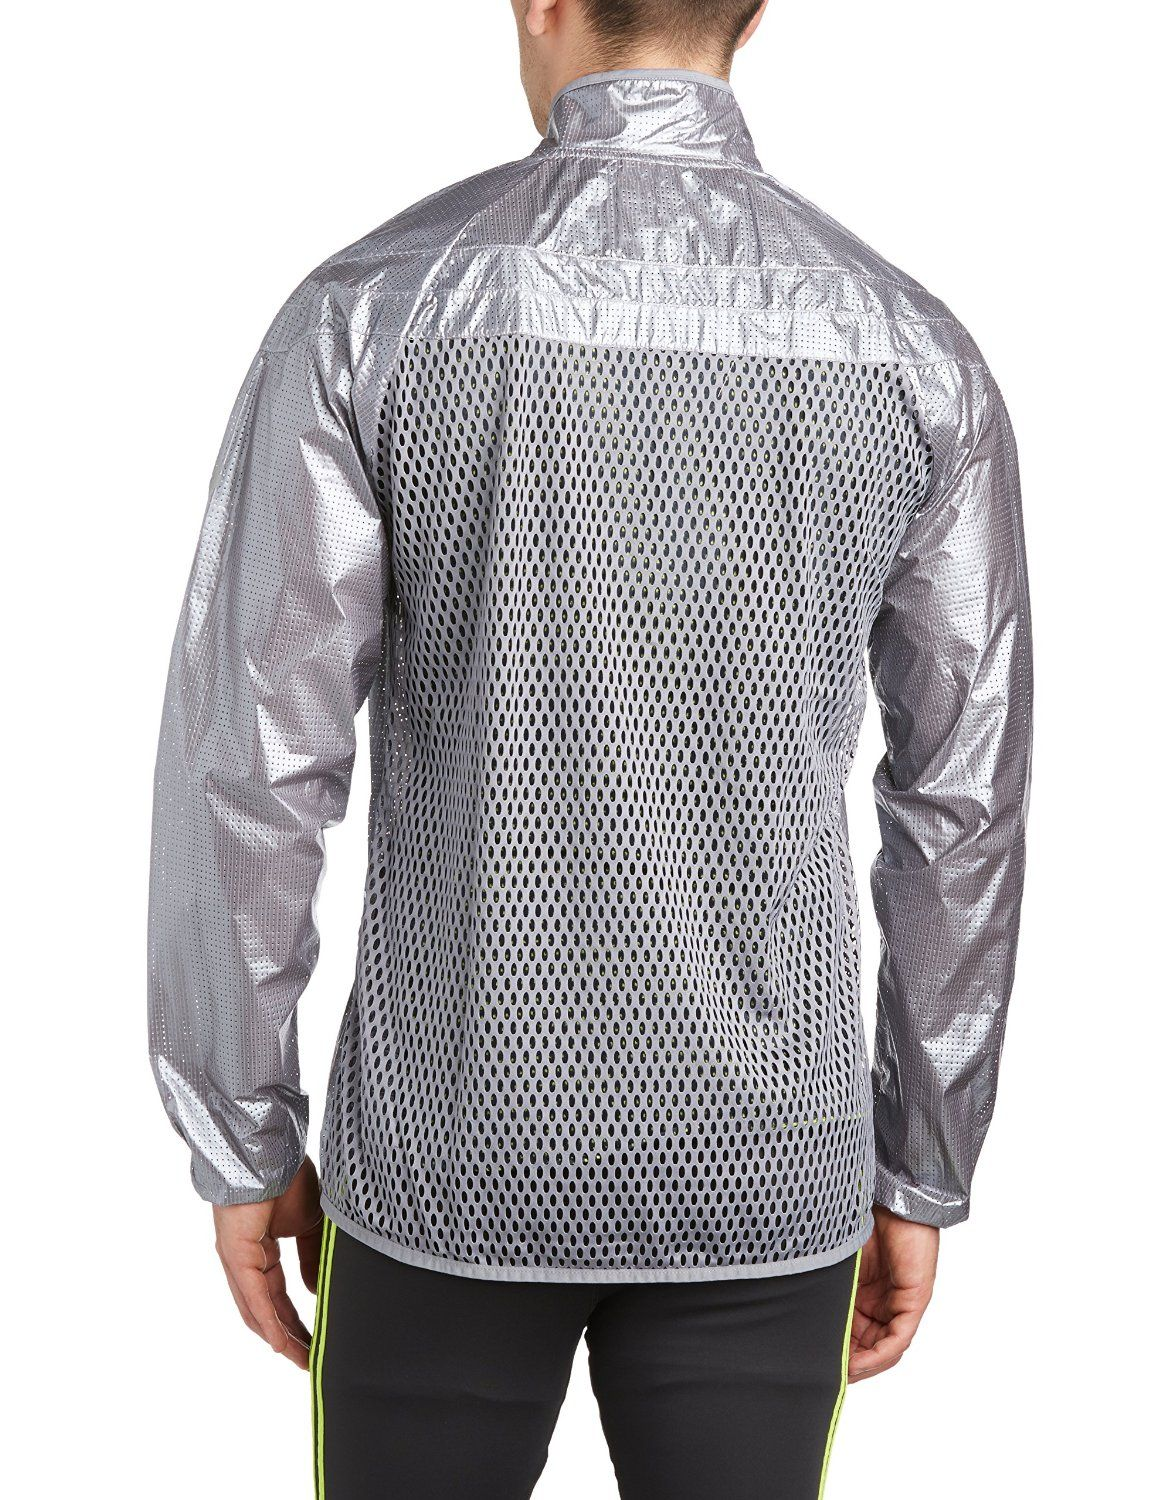 ad7ee4a613162a adidas d80120 clm anth jacket | SPRING SUMMER 2015